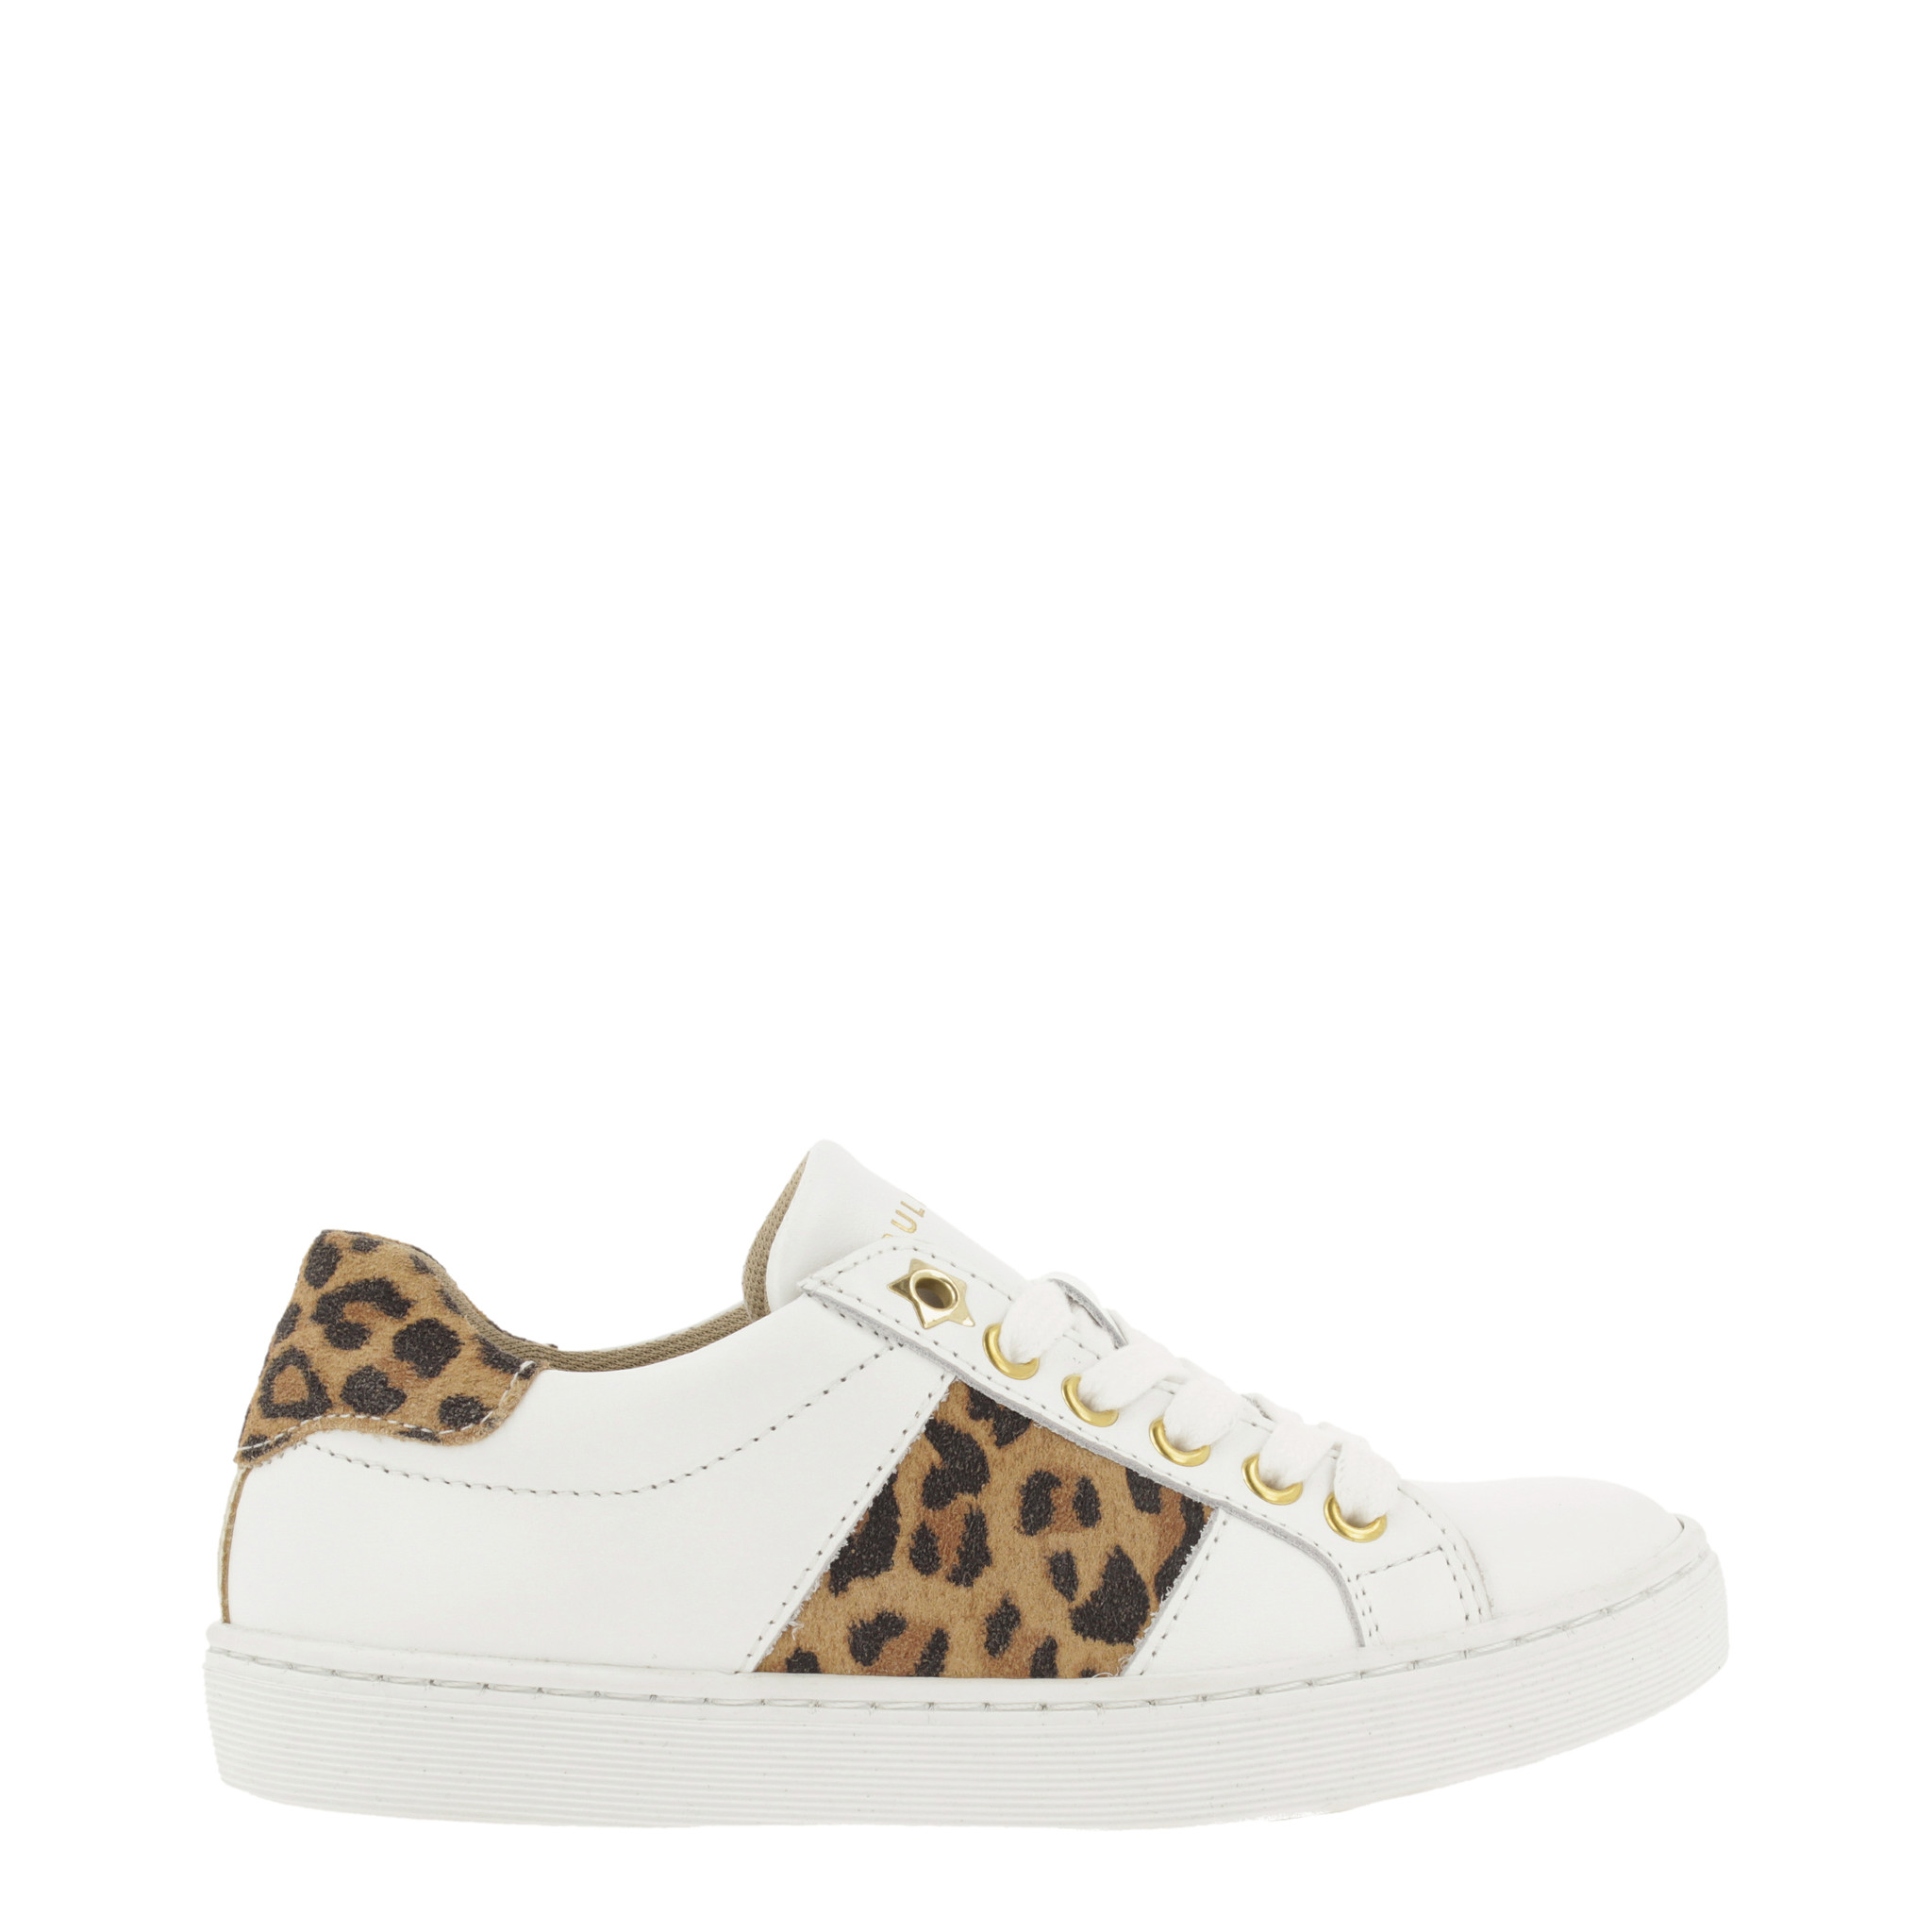 Bullboxer Sneaker White with